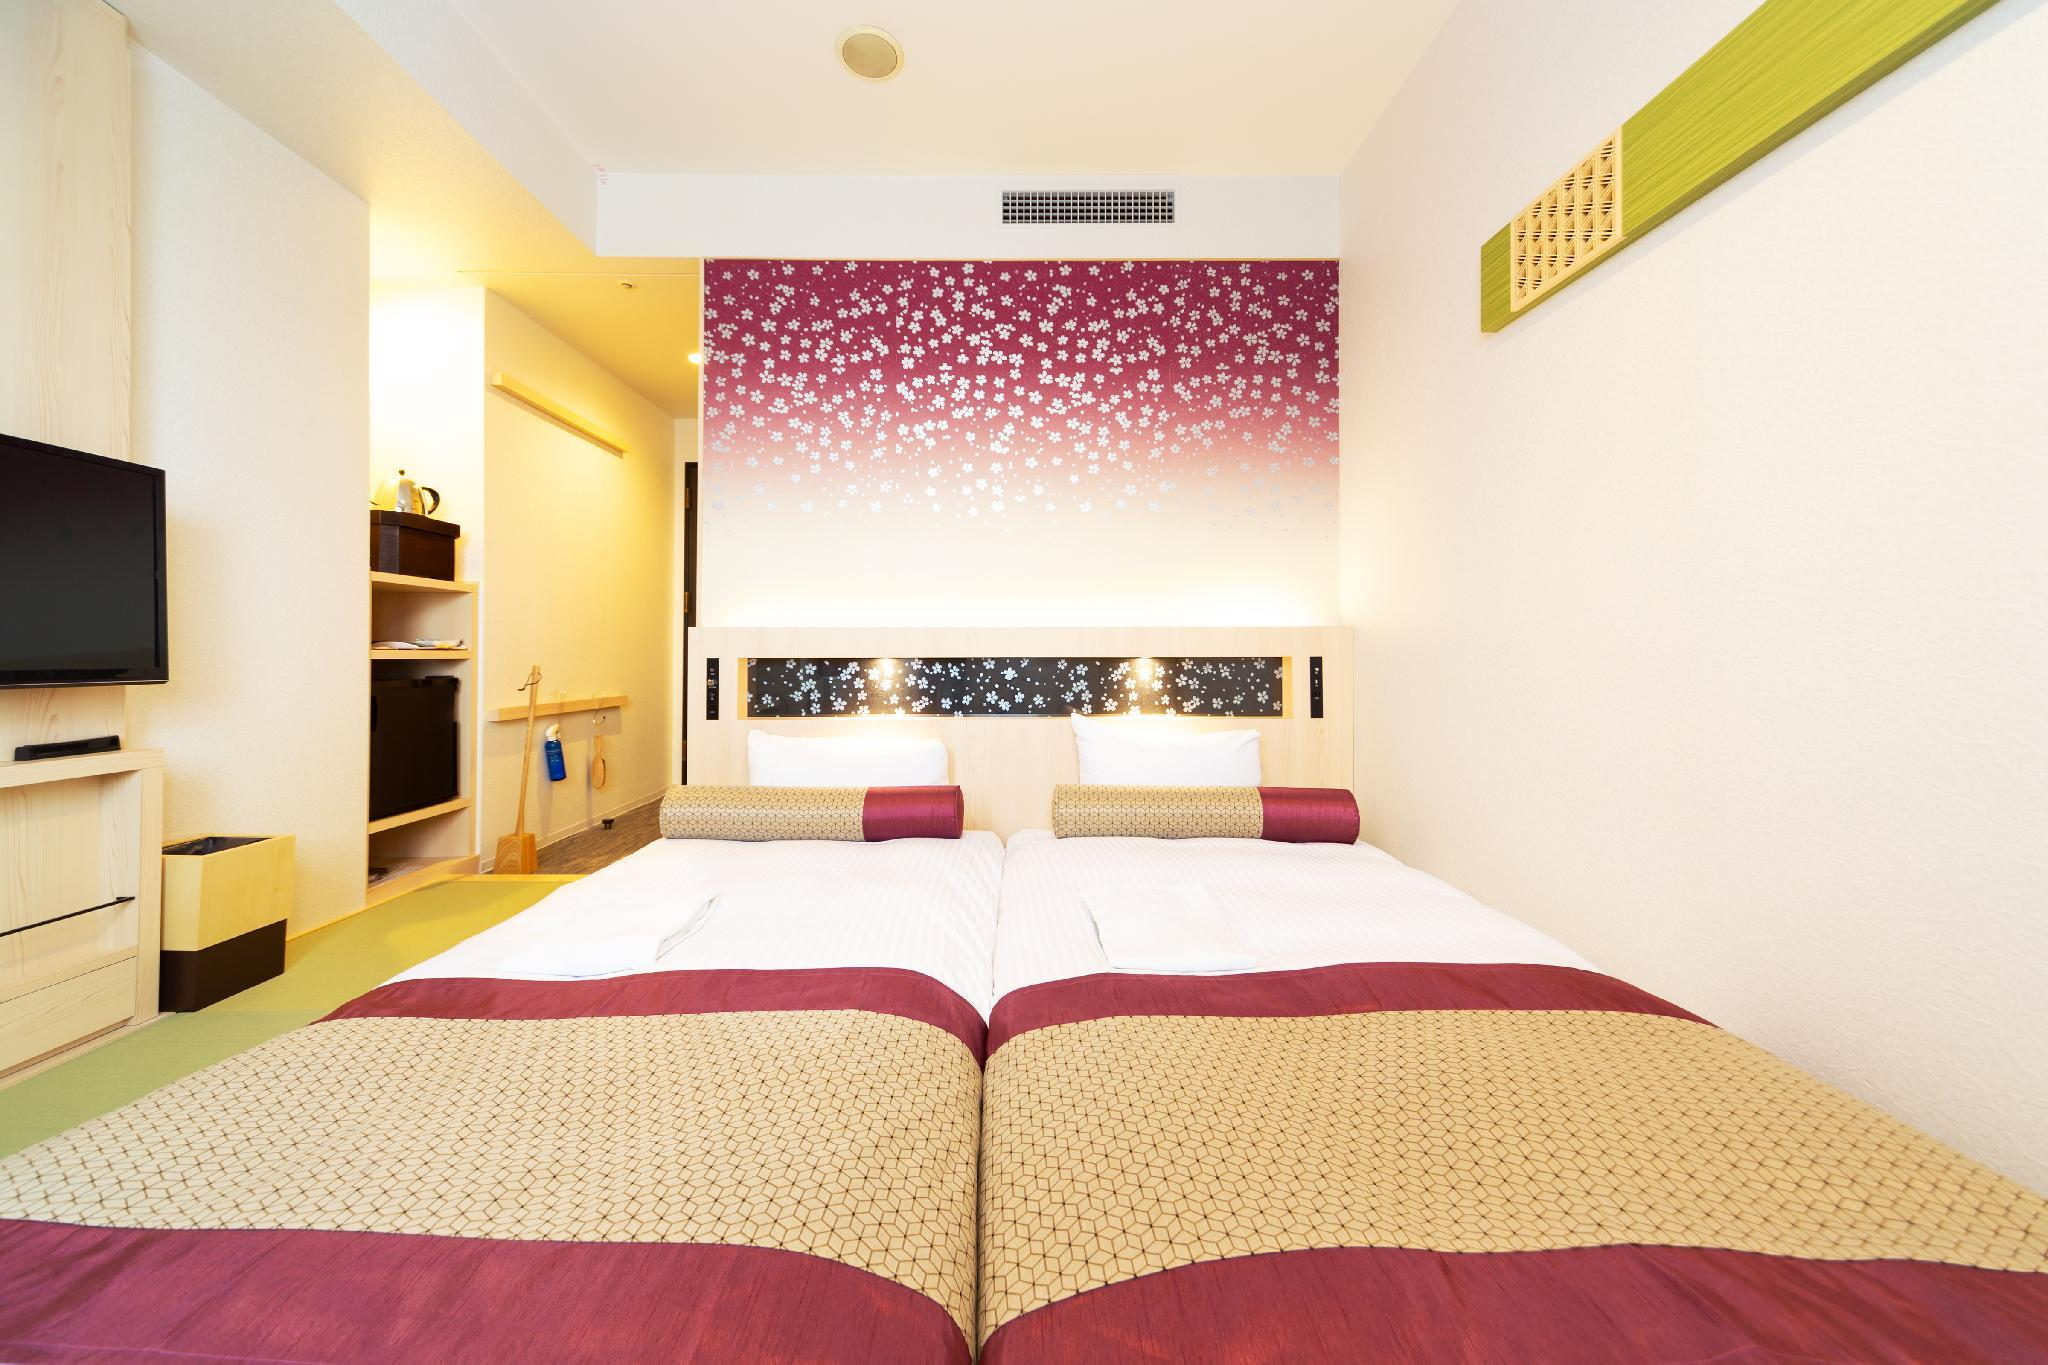 Kamar Twin Casual Sakura – Baru Direnovasi (Sakura Casual Twin - Newly Renovated)